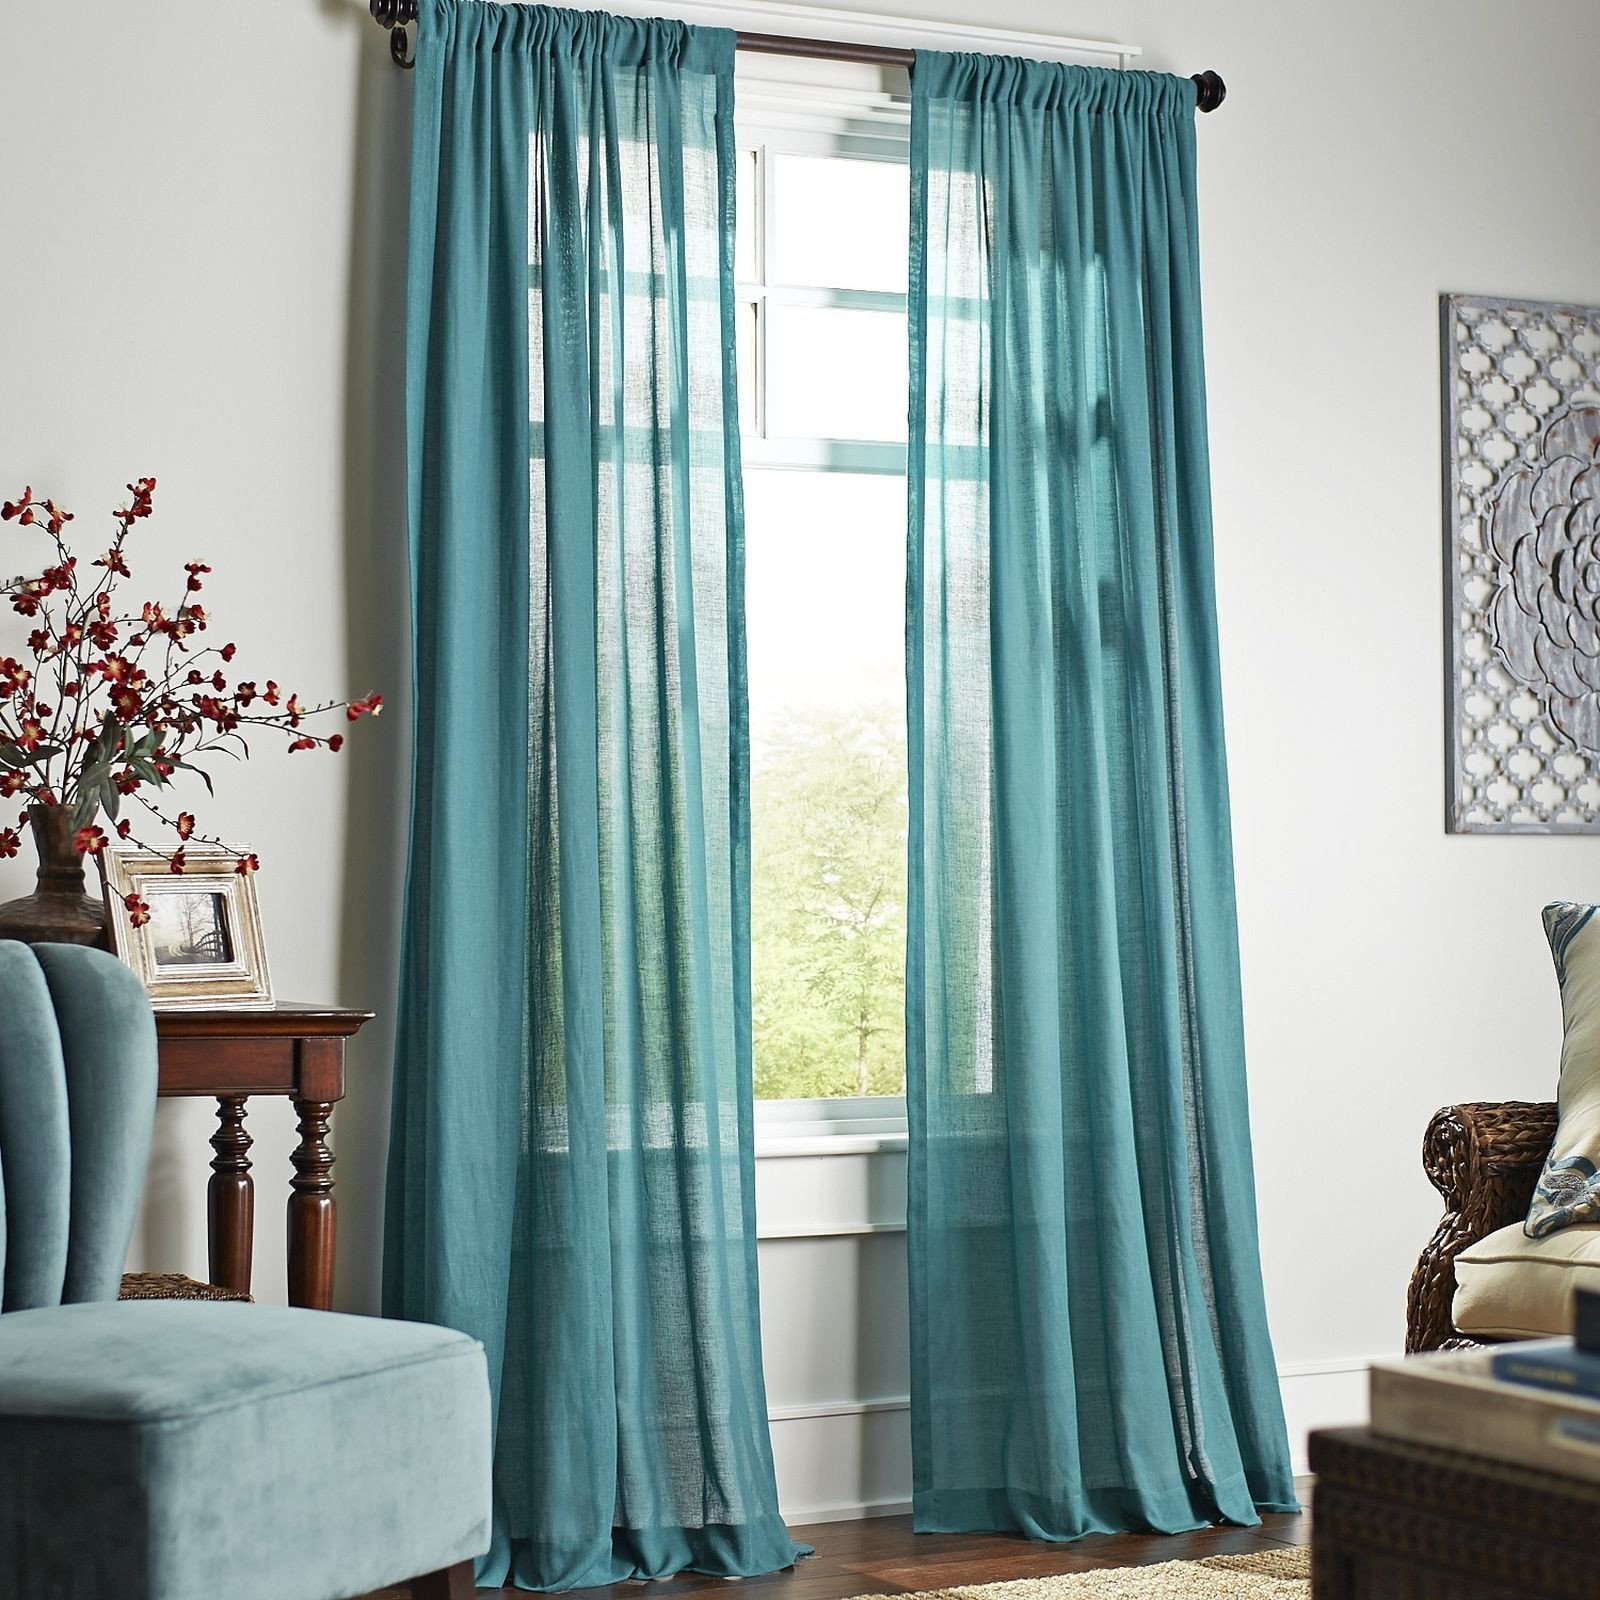 Black and White Bedroom Curtains Unique Quinn Sheer Curtain Teal Pier 1 Imports